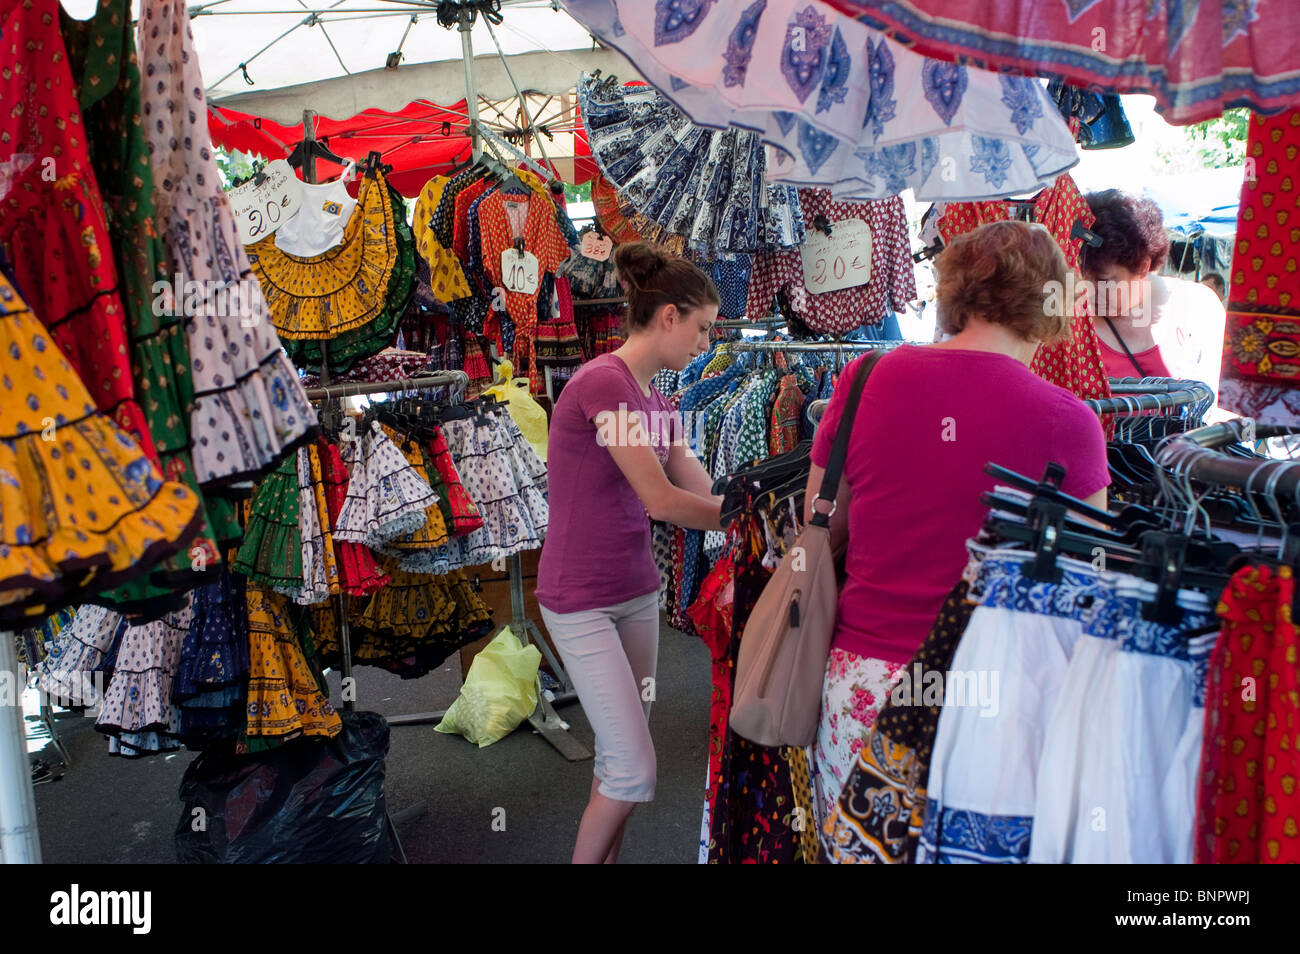 Arles, France, Female Teen Tourists Shopping in Local Provincial Stores, Locally Made Clothing, Souvenirs - Stock Image